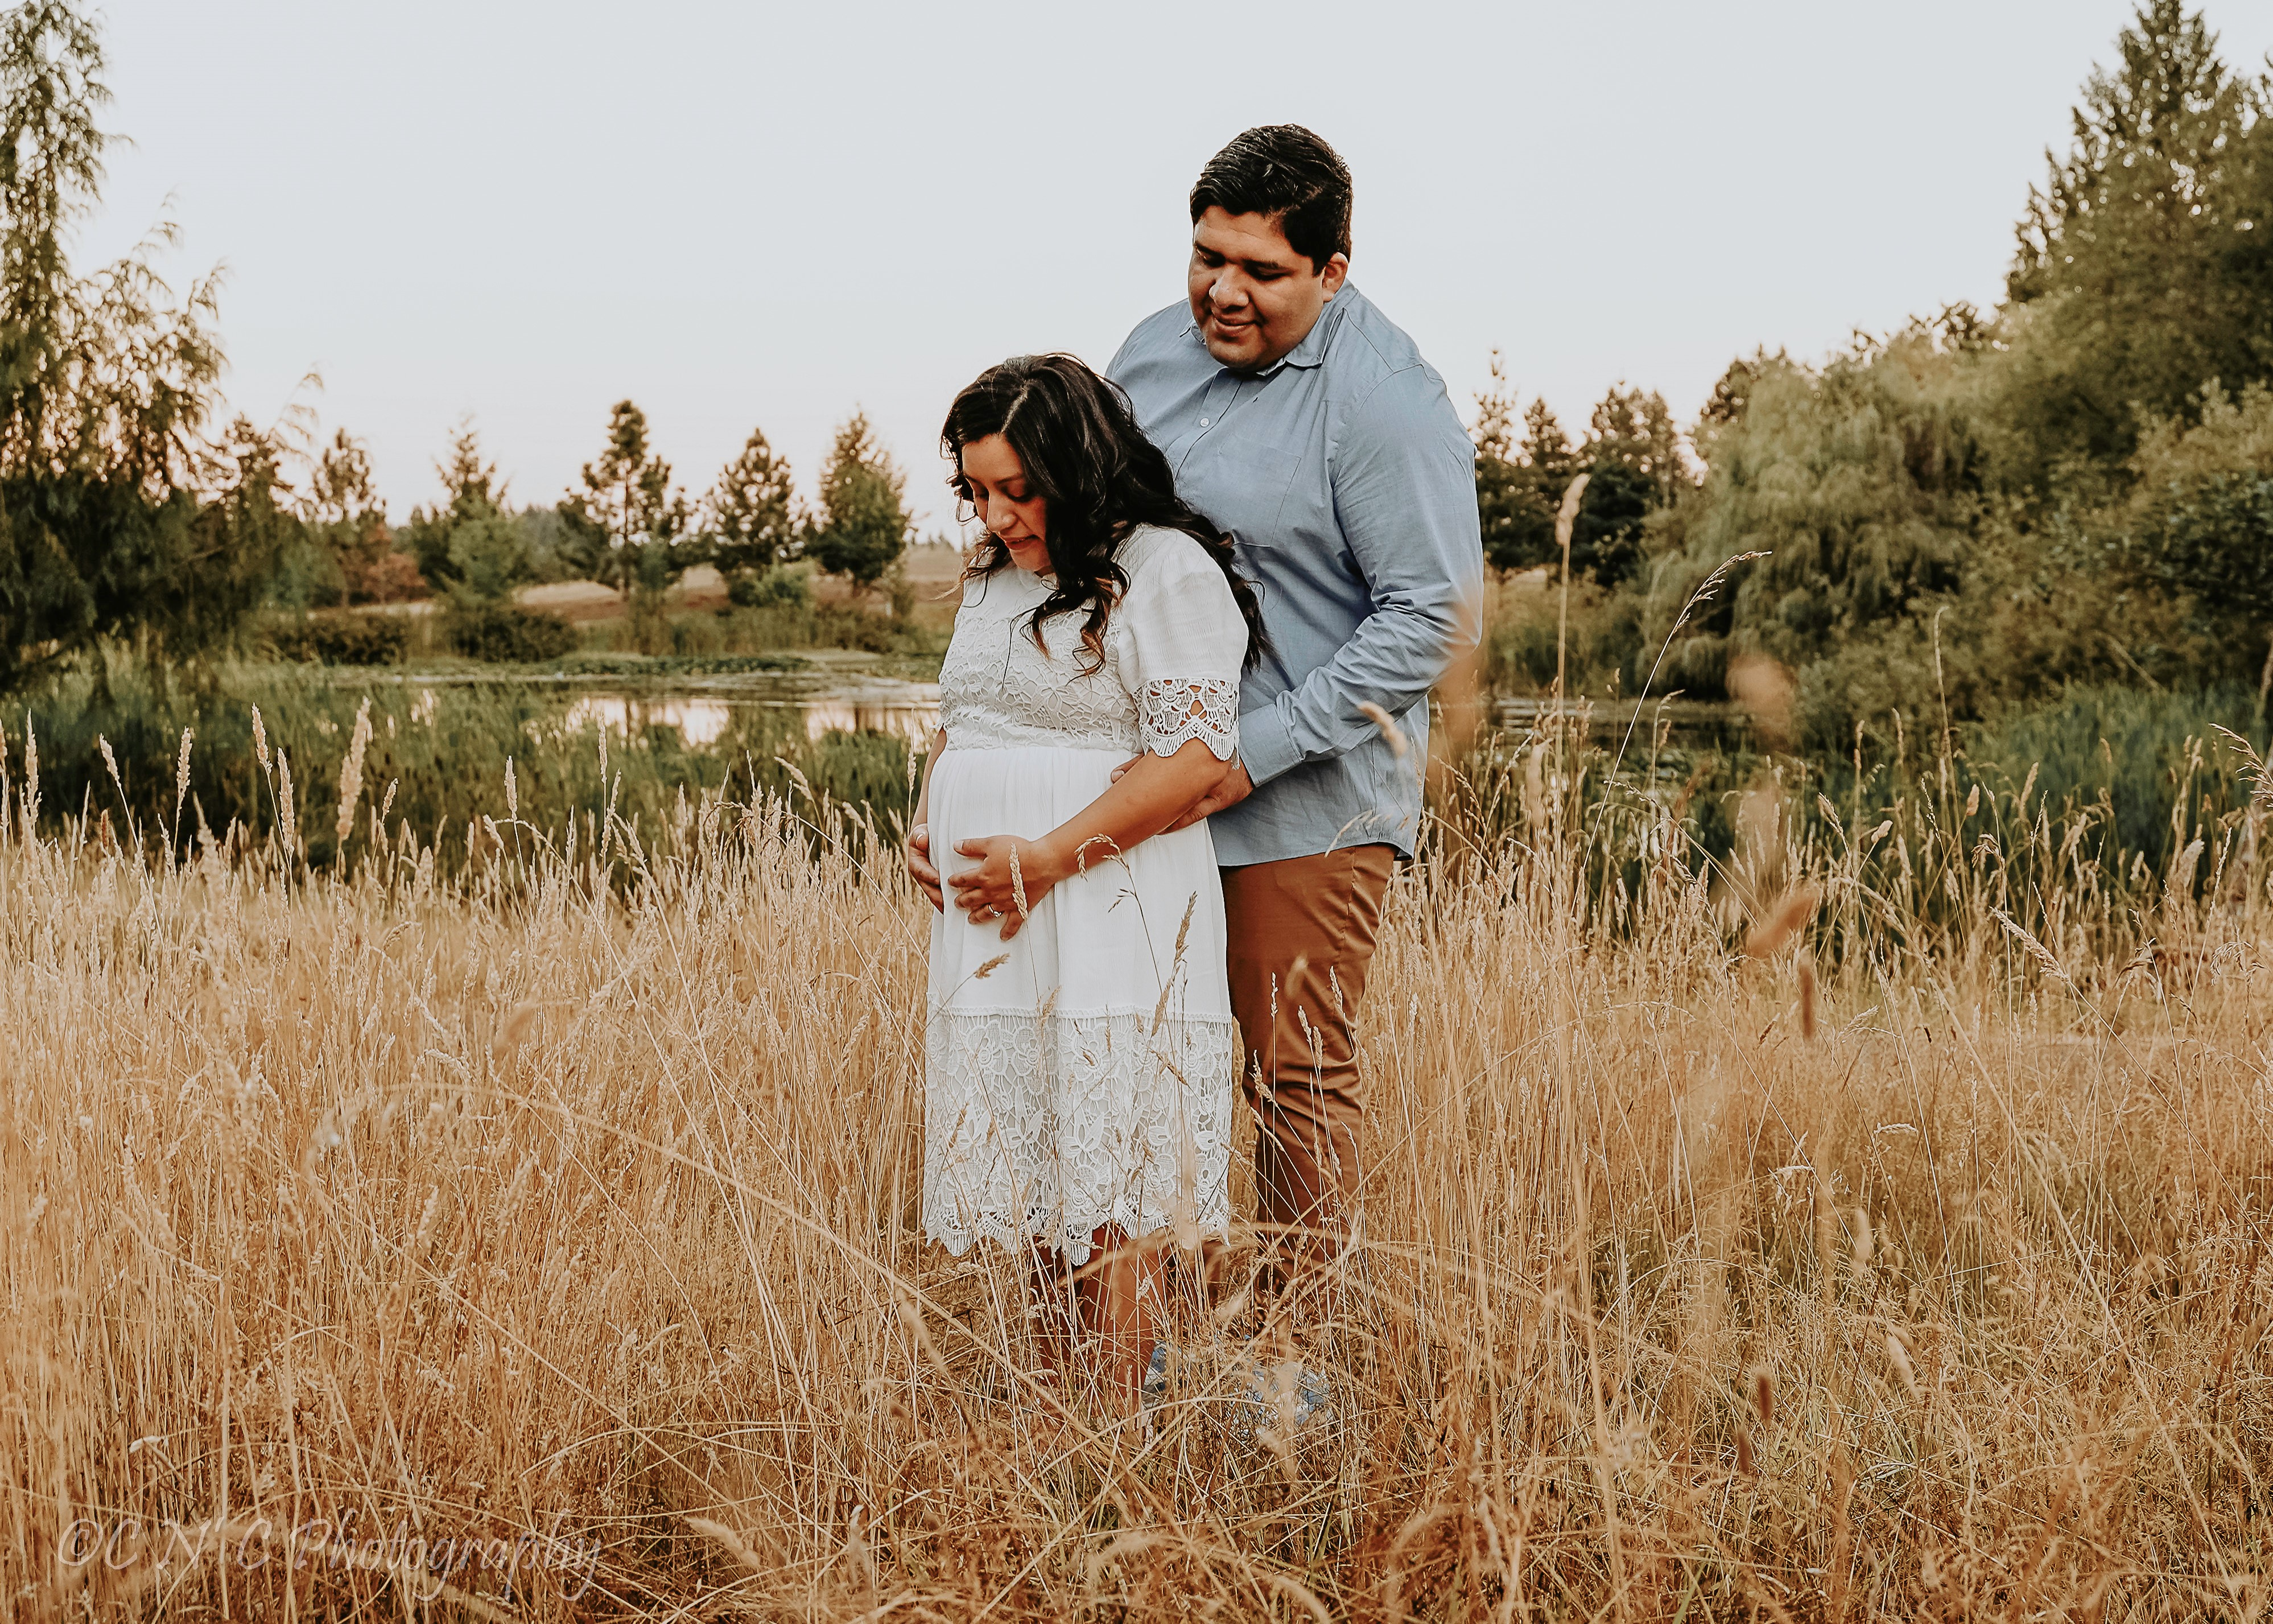 'The right decision': Vaccinated, pregnant woman shares her experience